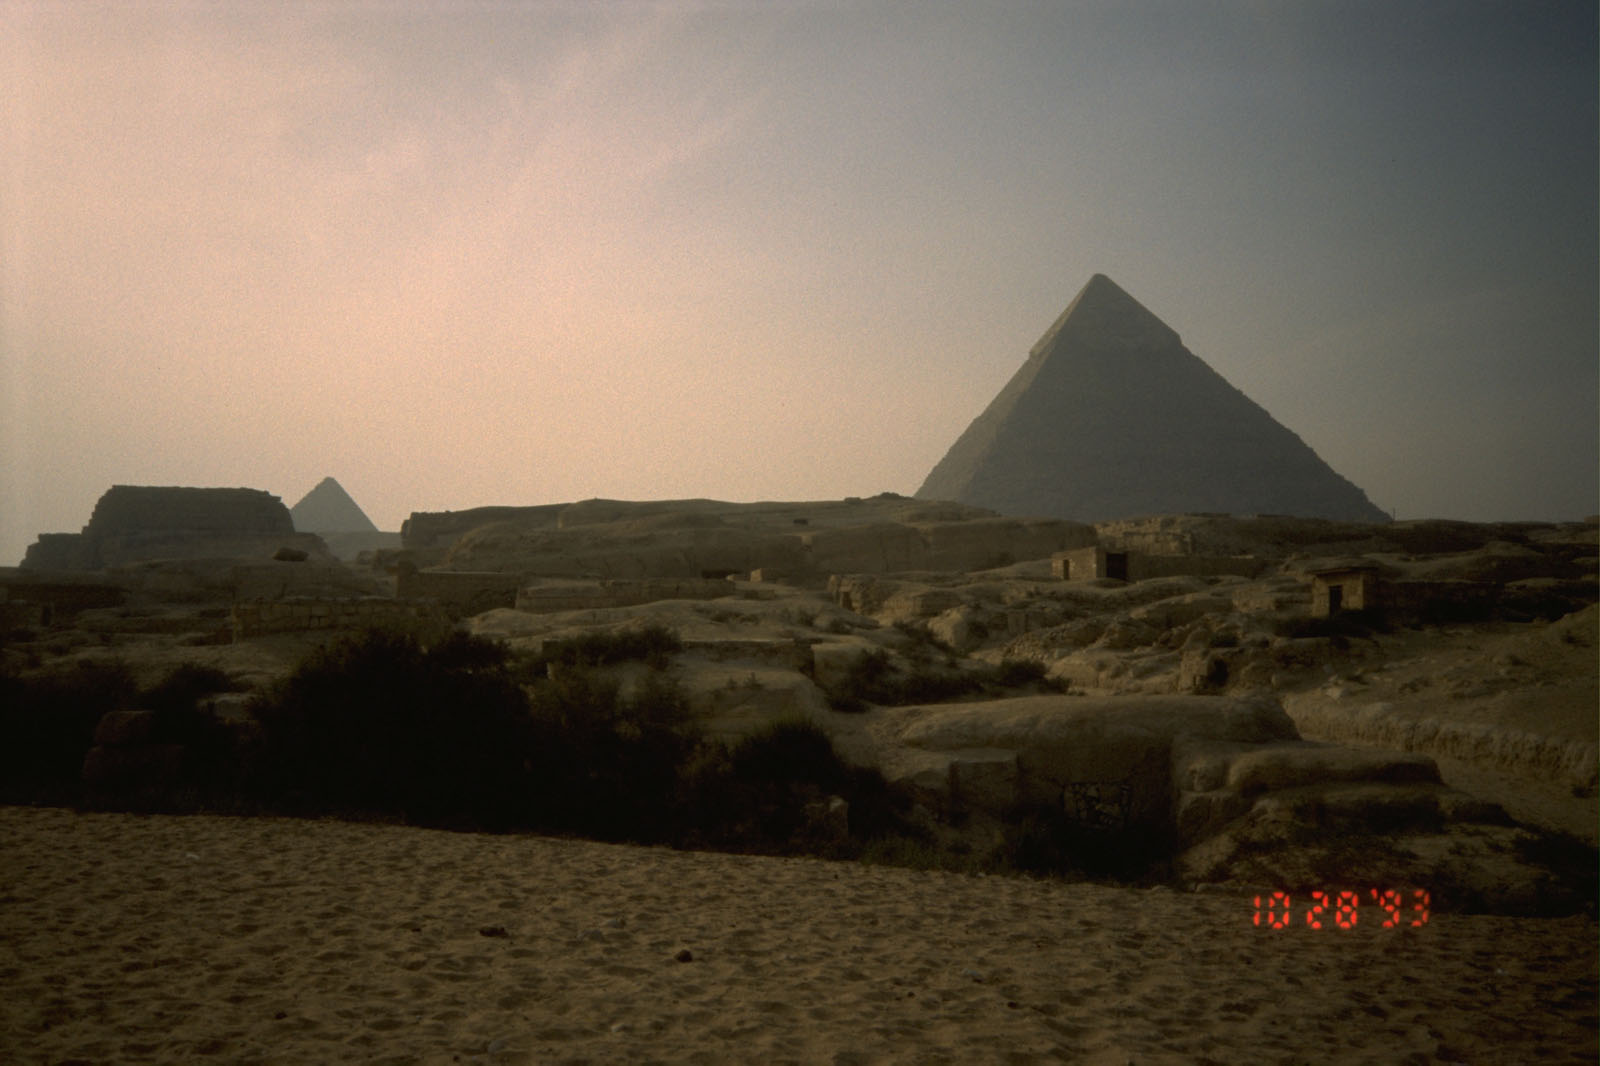 Central Field (Hassan): Site: Giza; View: Central Field